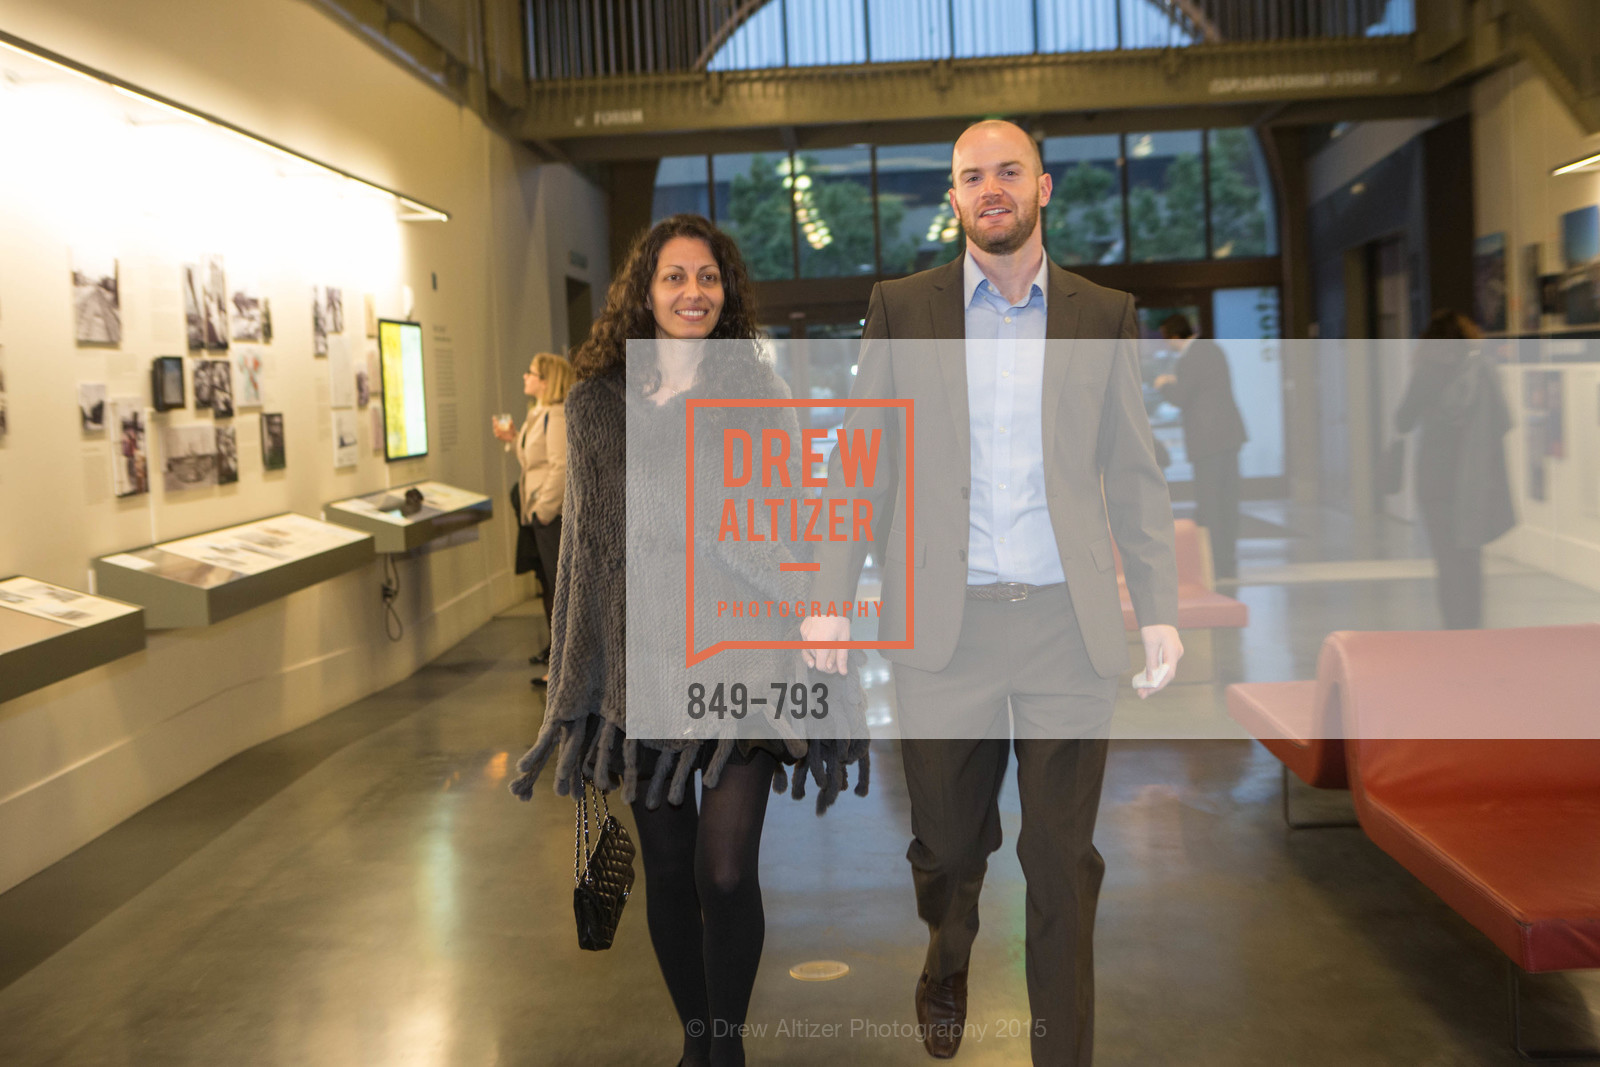 Donatella Taurasi, Christopher Cameron, SF BRAVO CLUB Sneak Peek at the EXPLORATORIUM, US, April 23rd, 2015,Drew Altizer, Drew Altizer Photography, full-service agency, private events, San Francisco photographer, photographer california